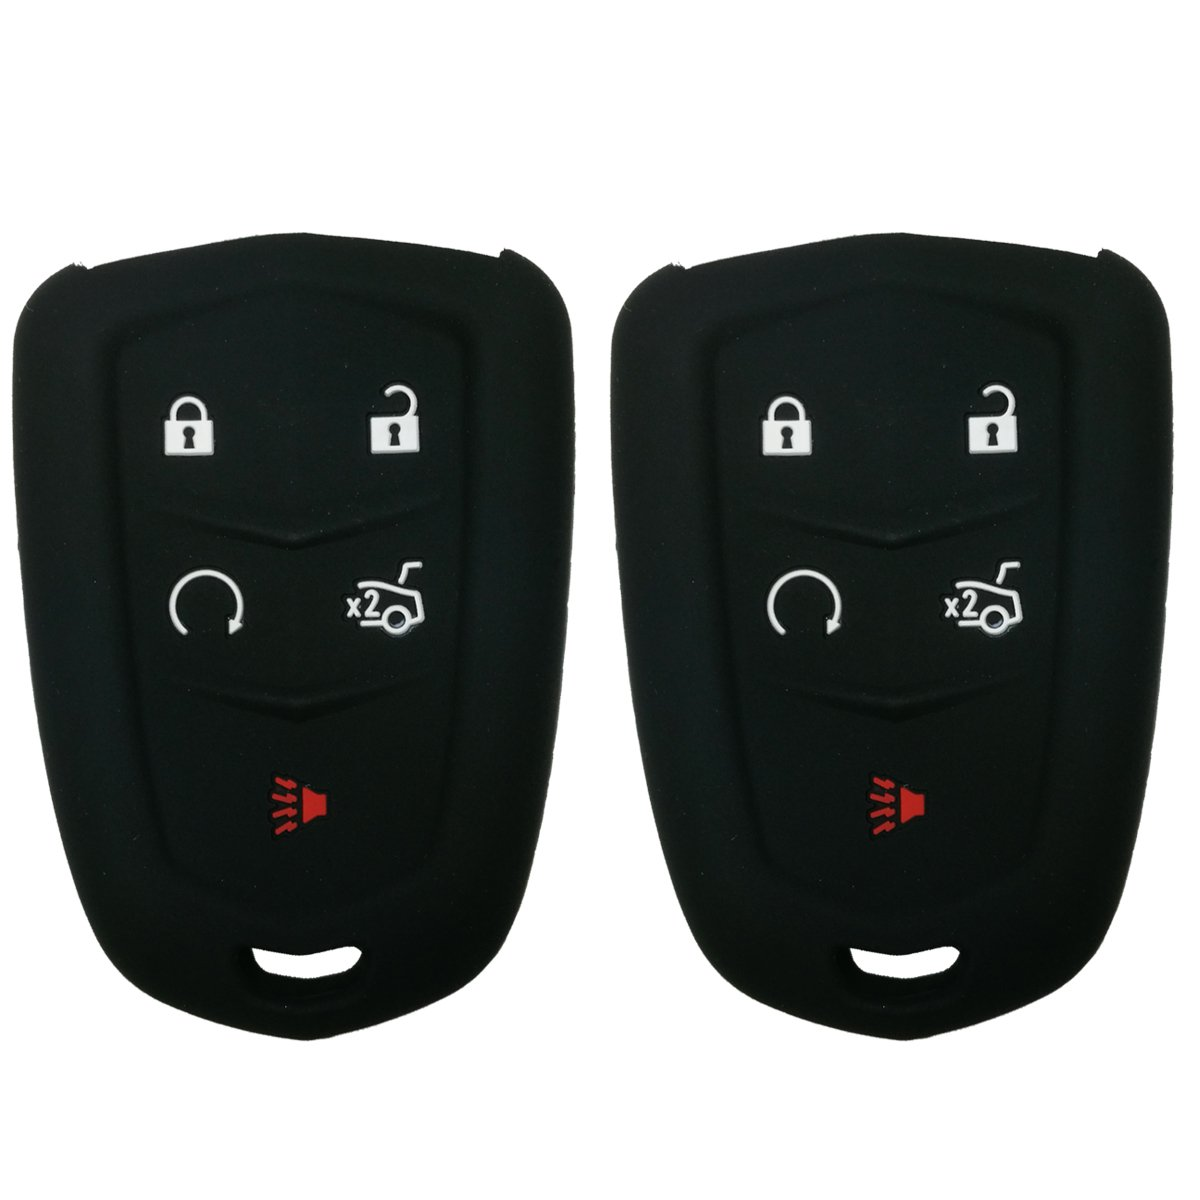 2Pcs Coolbestda Rubber 5 Buttons Smart Key Fob Remote Cover Case Protector Keyless Jacket for 2018 2017 2016 Cadillac CT6 XT5 CTS XTS SRX ATS HYQ2AB HYQ2EB Black